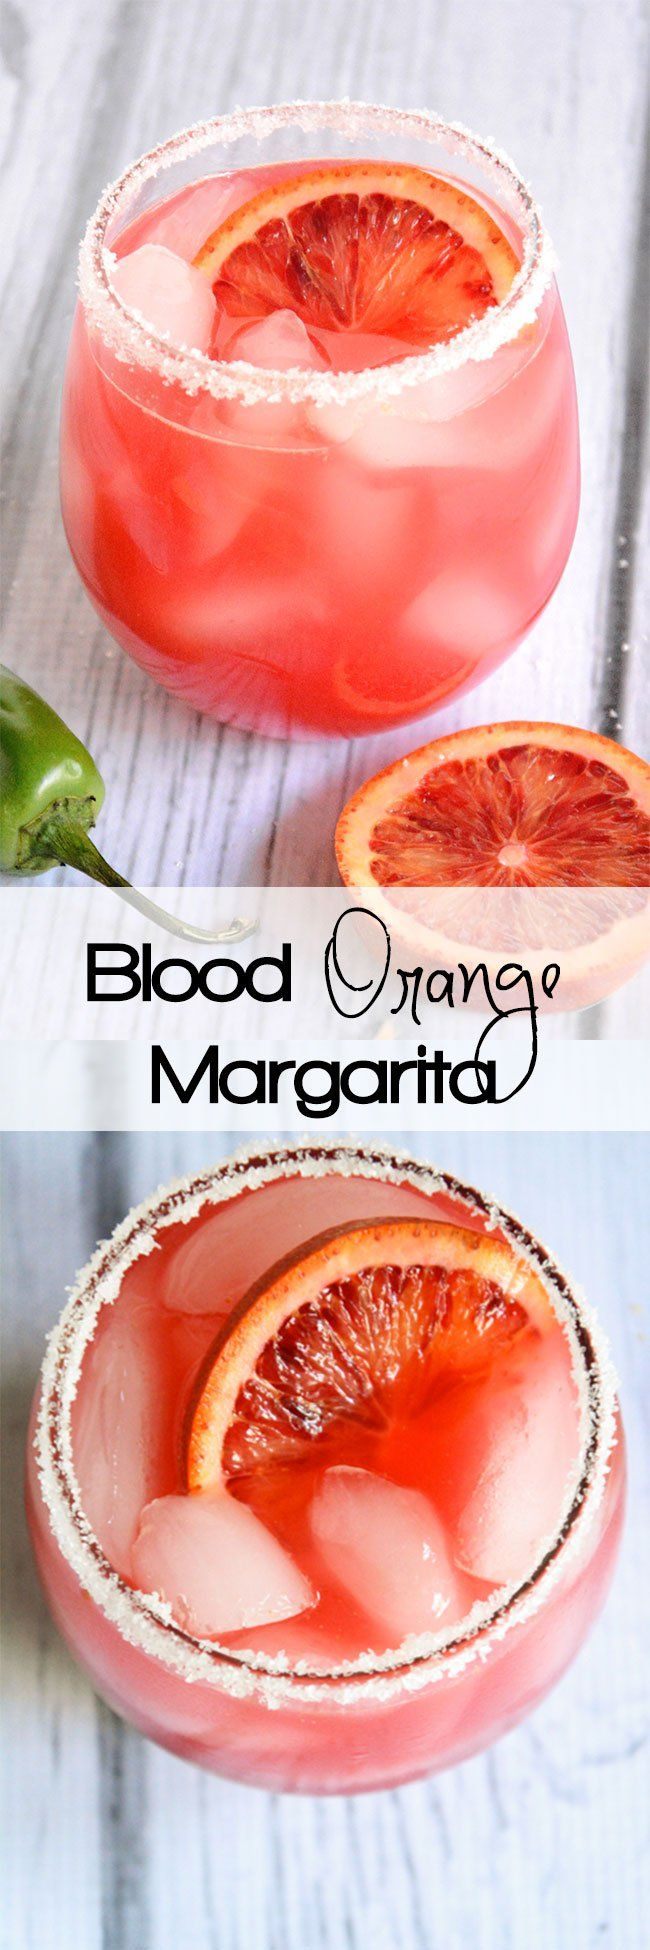 This Blood Orange Margarita is a refreshing twist on a classic margarita with fresh blood orange juice, triple sec and fresh squeezed lime juice!